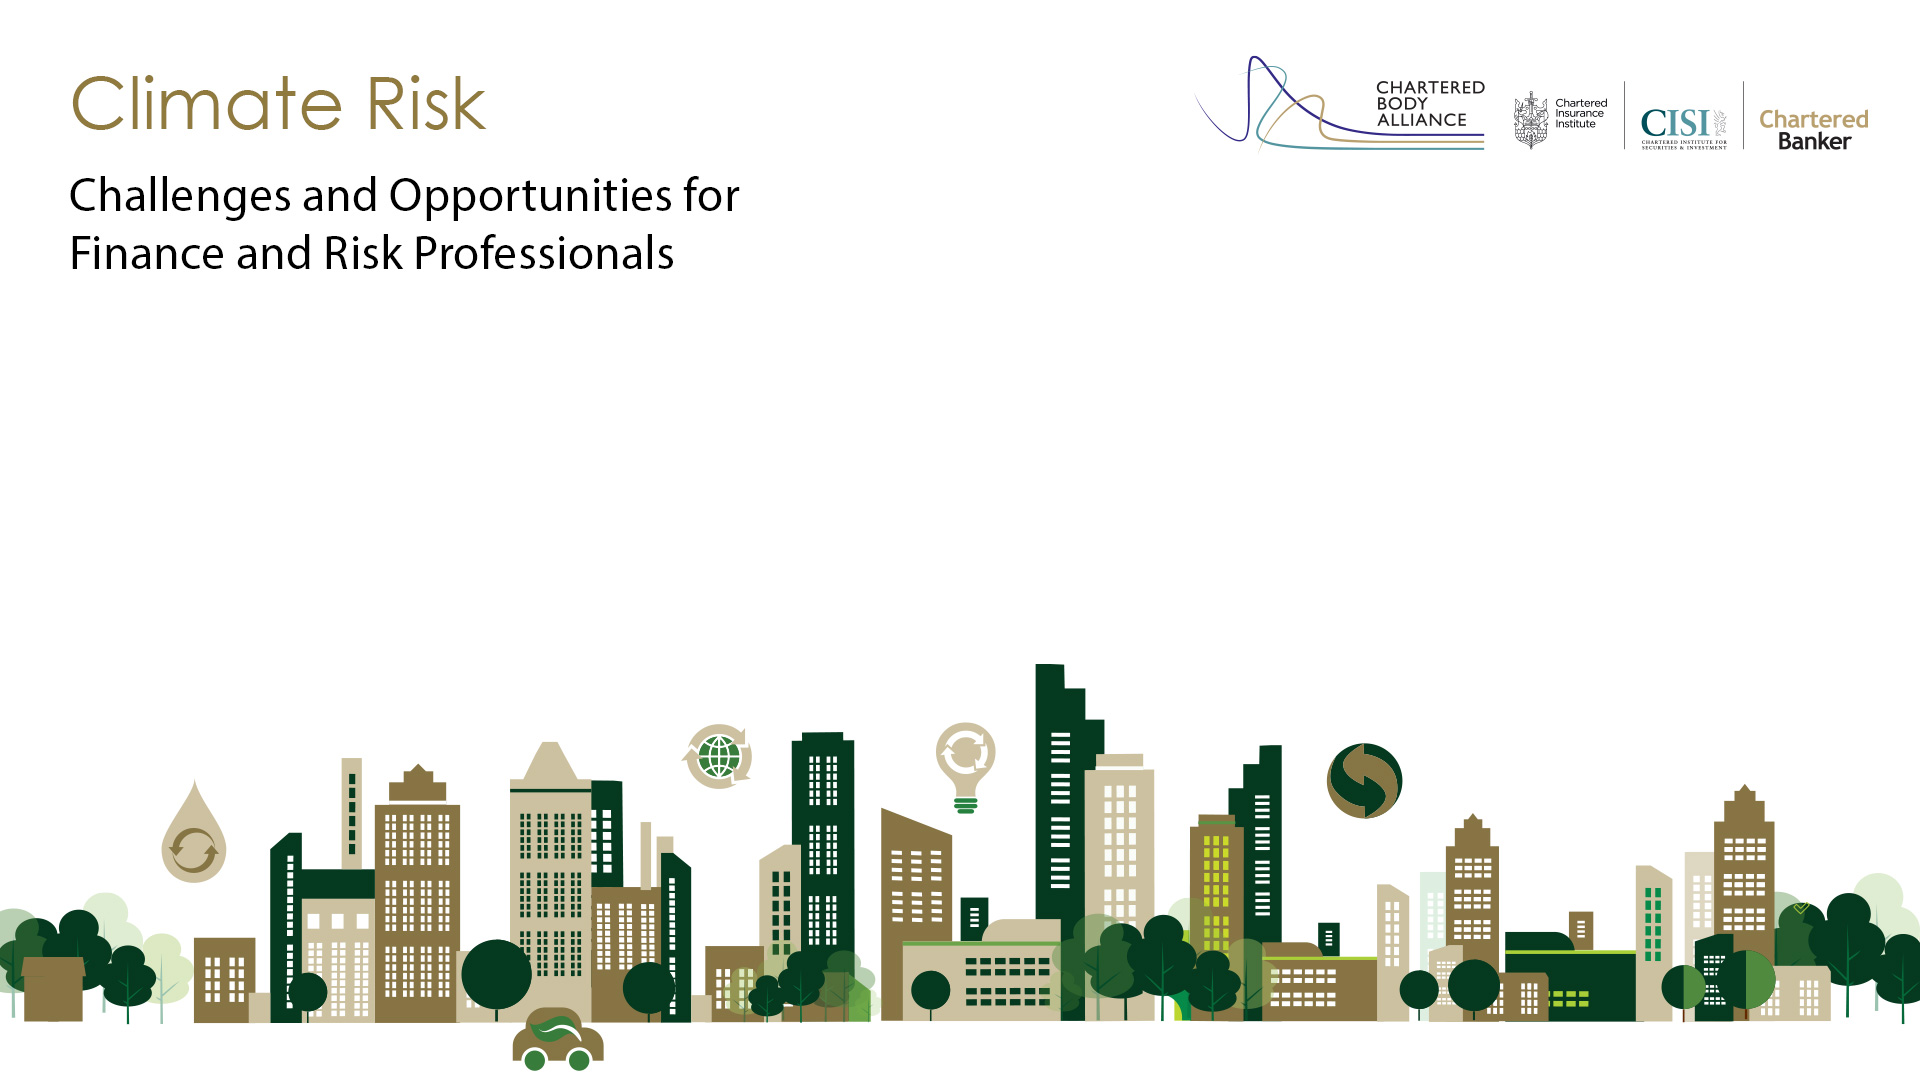 Climate Risk – Challenges and Opportunities for Finance and Risk Professionals